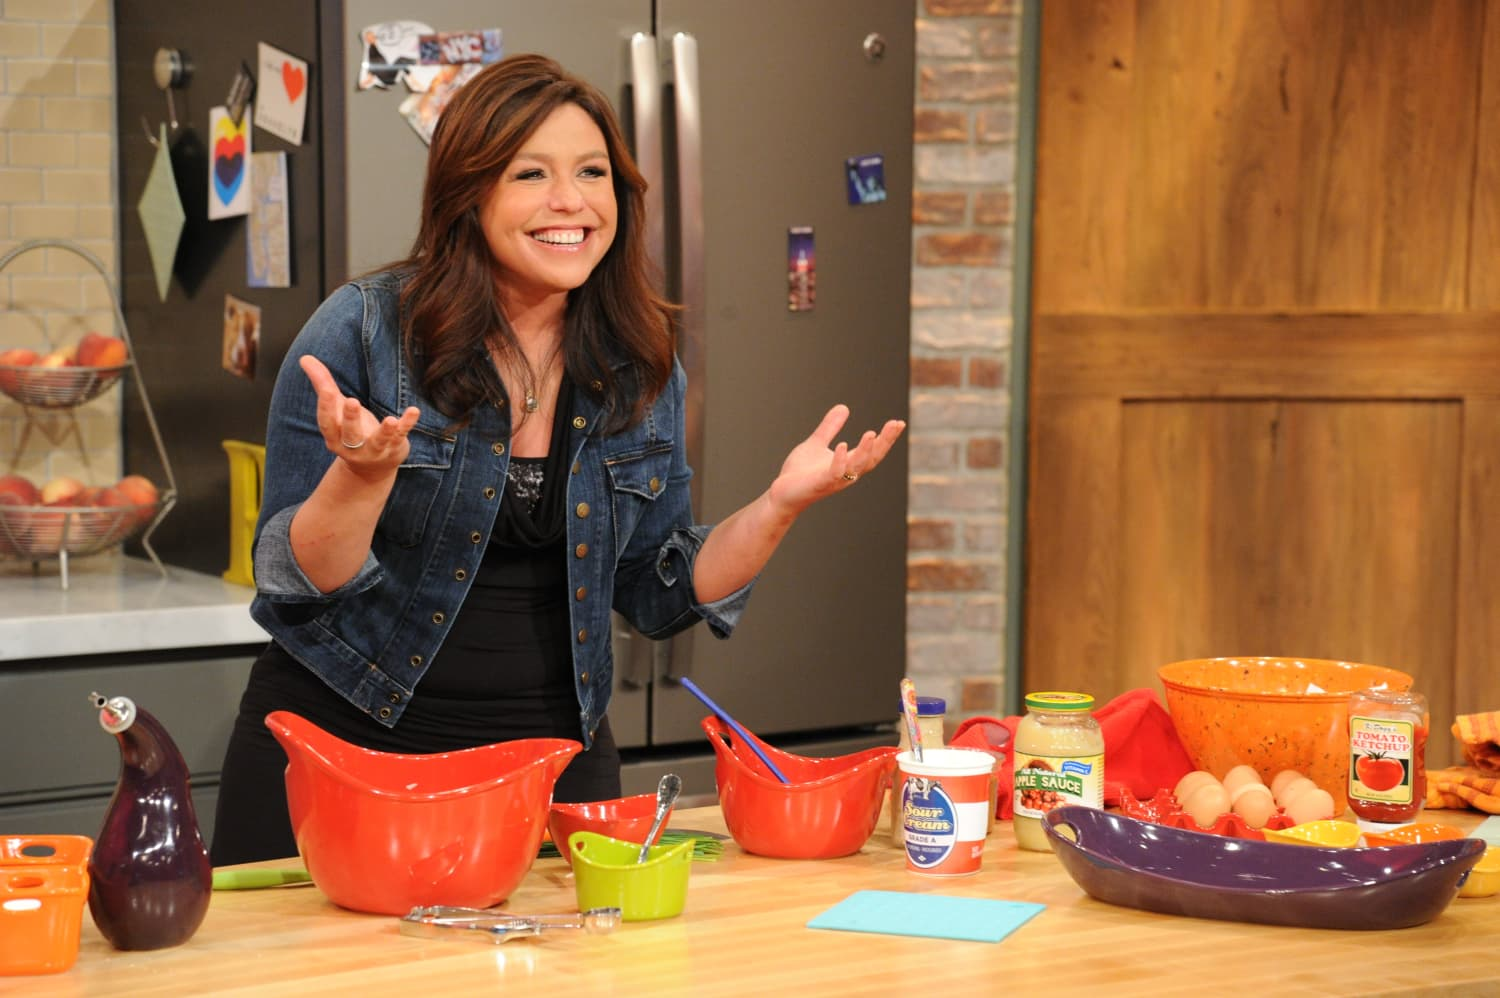 The Best Thing I Learned from Rachael Ray Might Surprise You